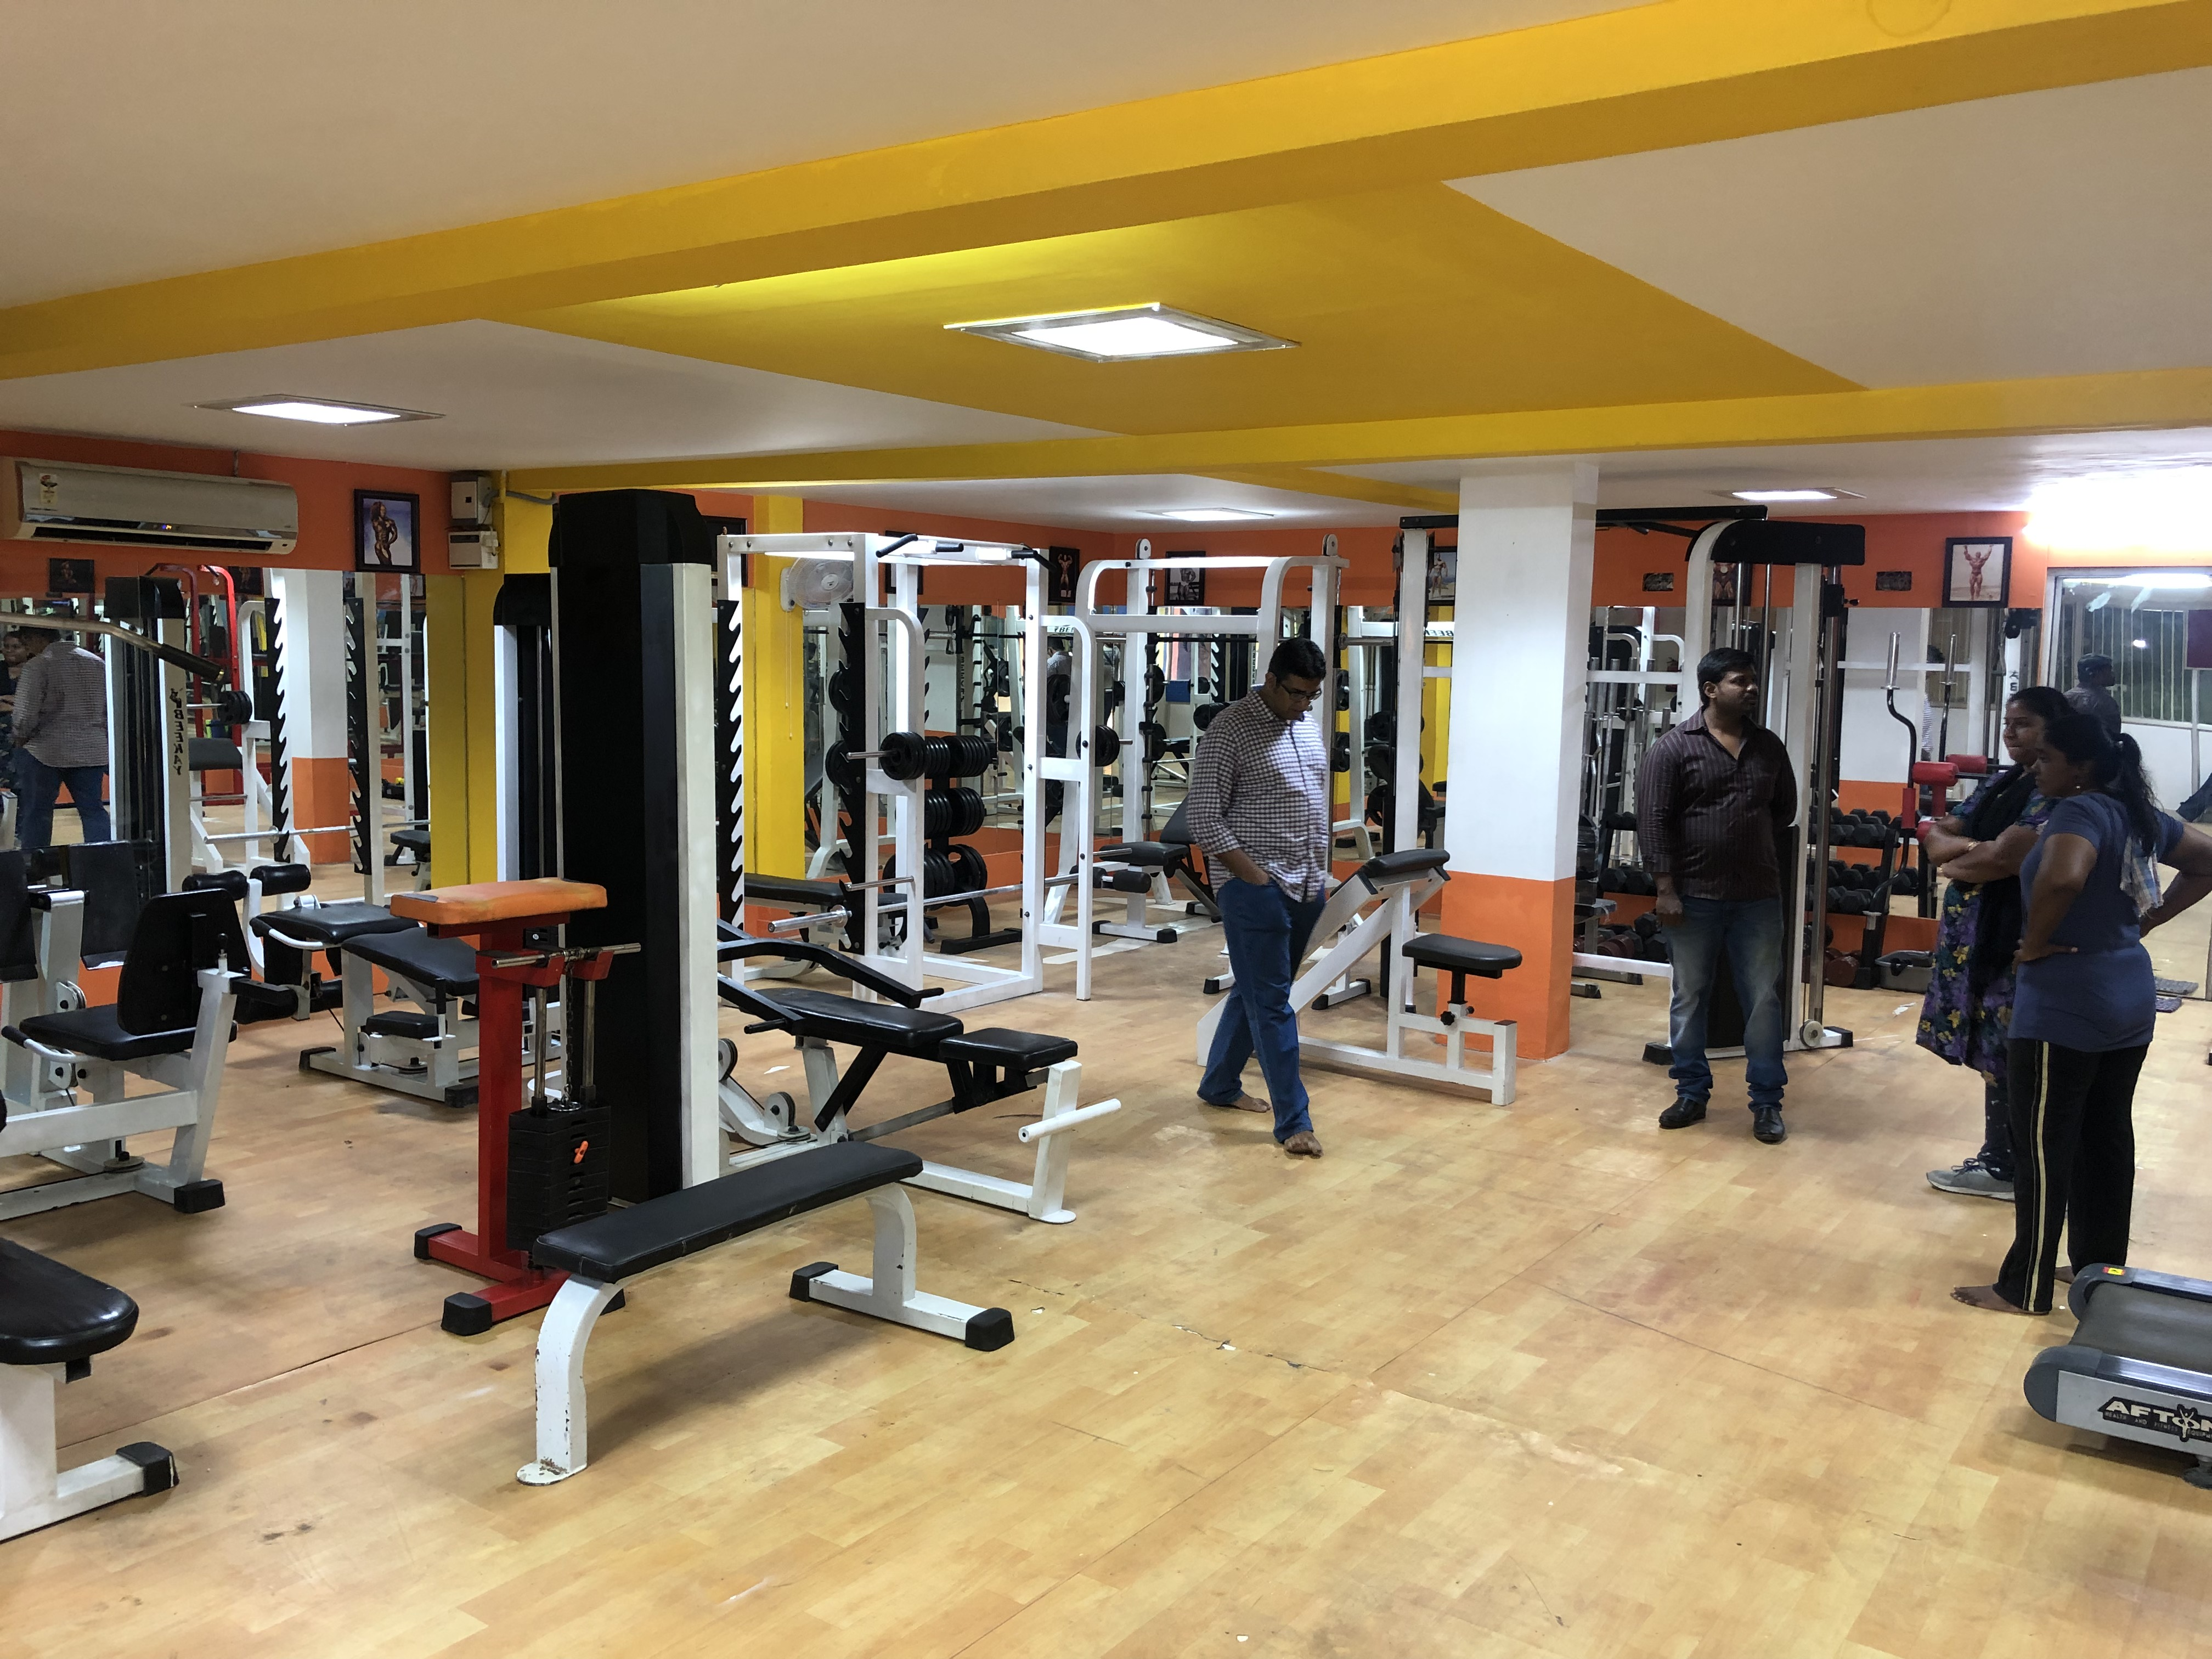 Branded Unisex Fitness Centre for Sale in Madurai